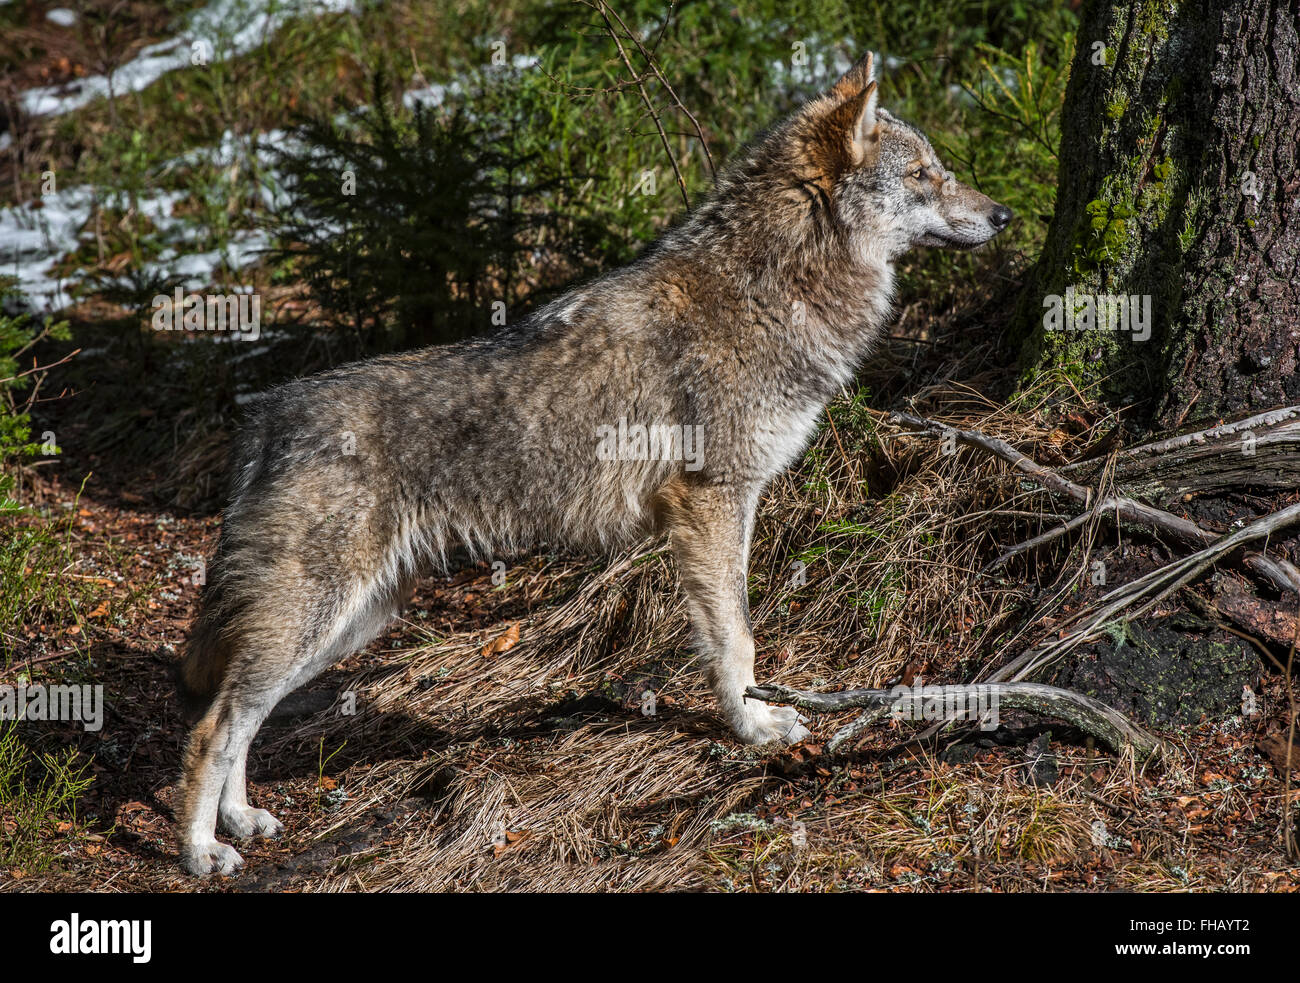 Solitary gray wolf / grey wolf / timber wolf (Canis lupus) in forest with melting snow in spring - Stock Image